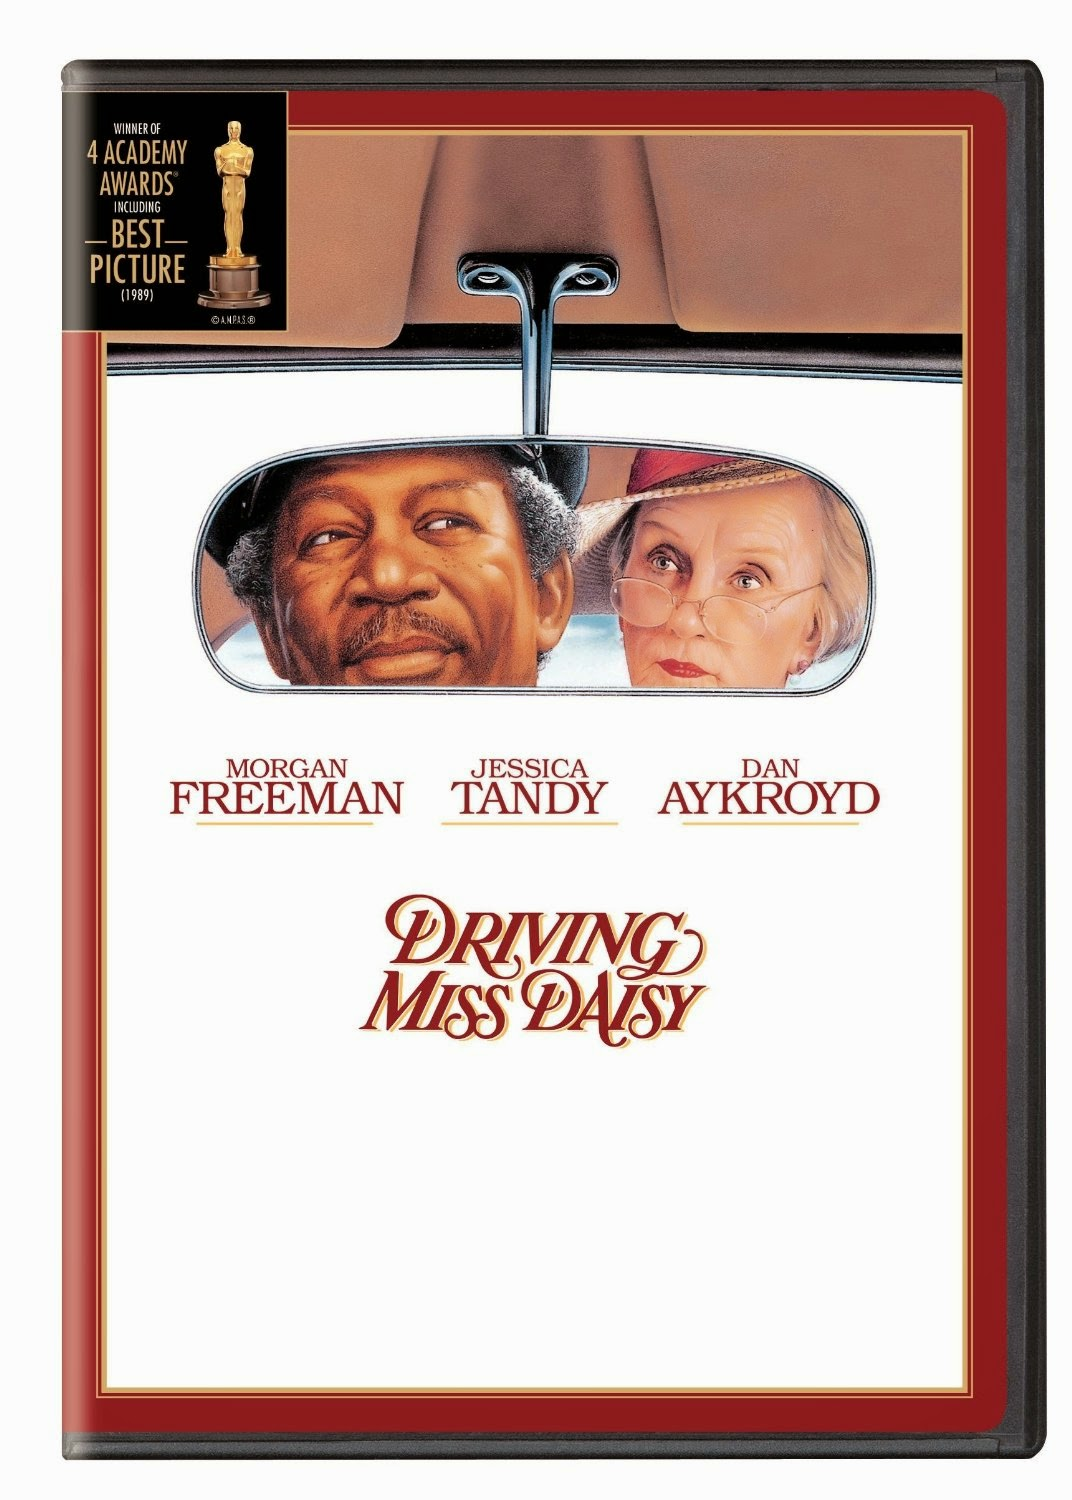 Driving miss daisy movie reviews